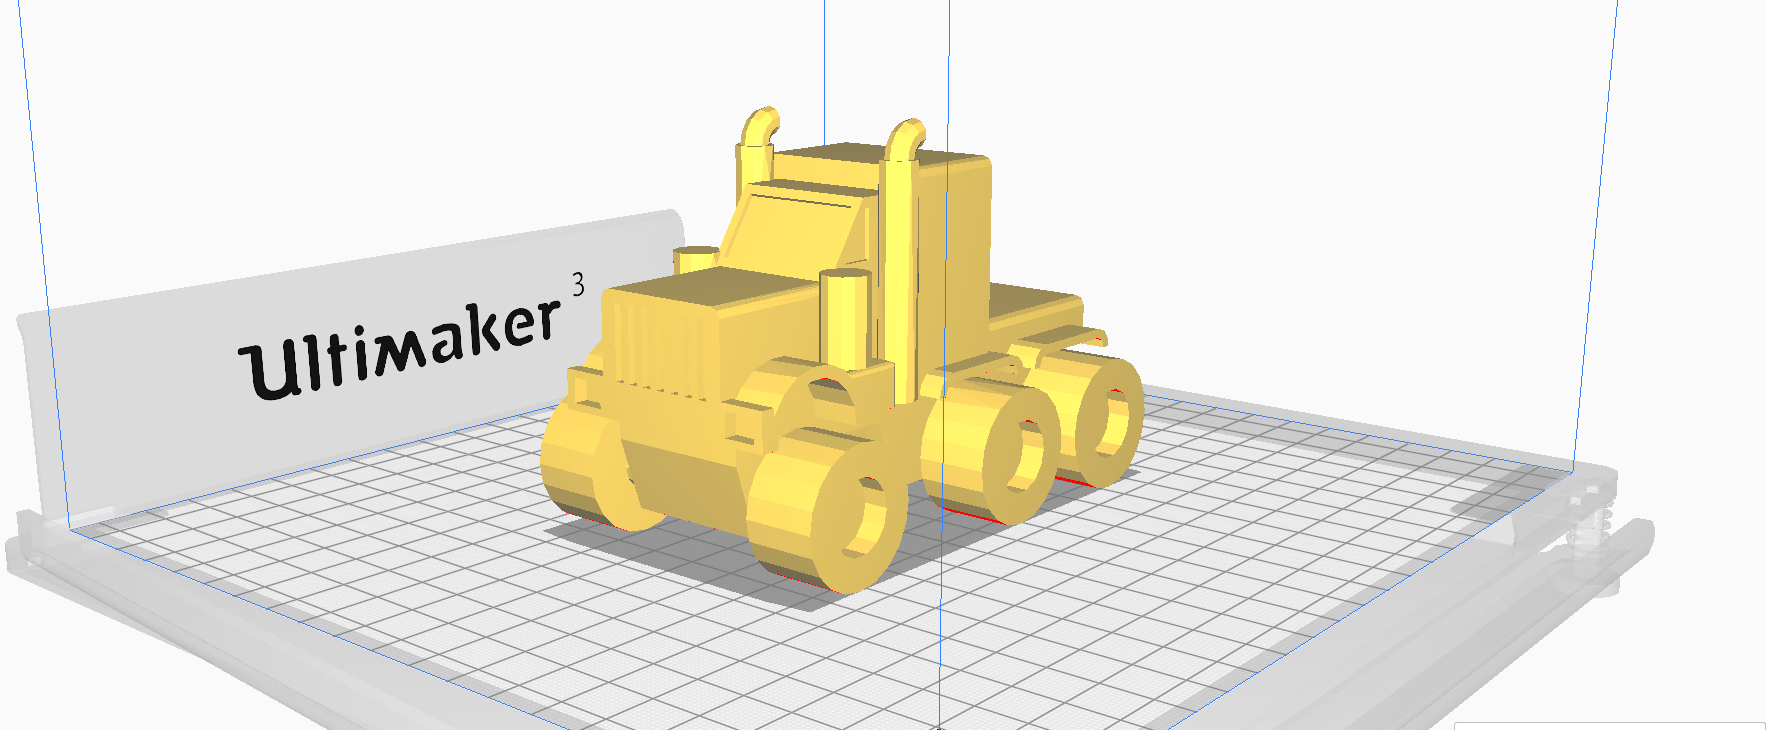 33.png Download STL file American truck (no container) • Template to 3D print, Mechanic